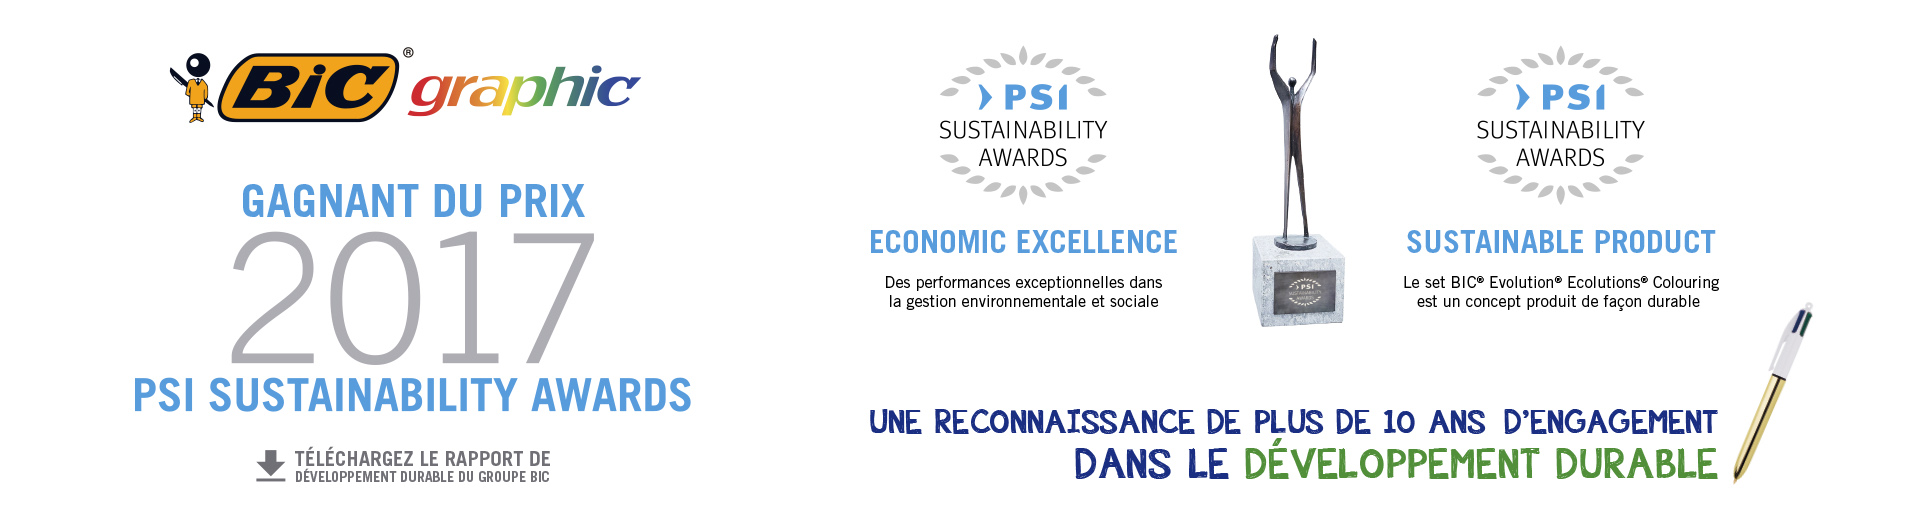 PSI Sustainability awards